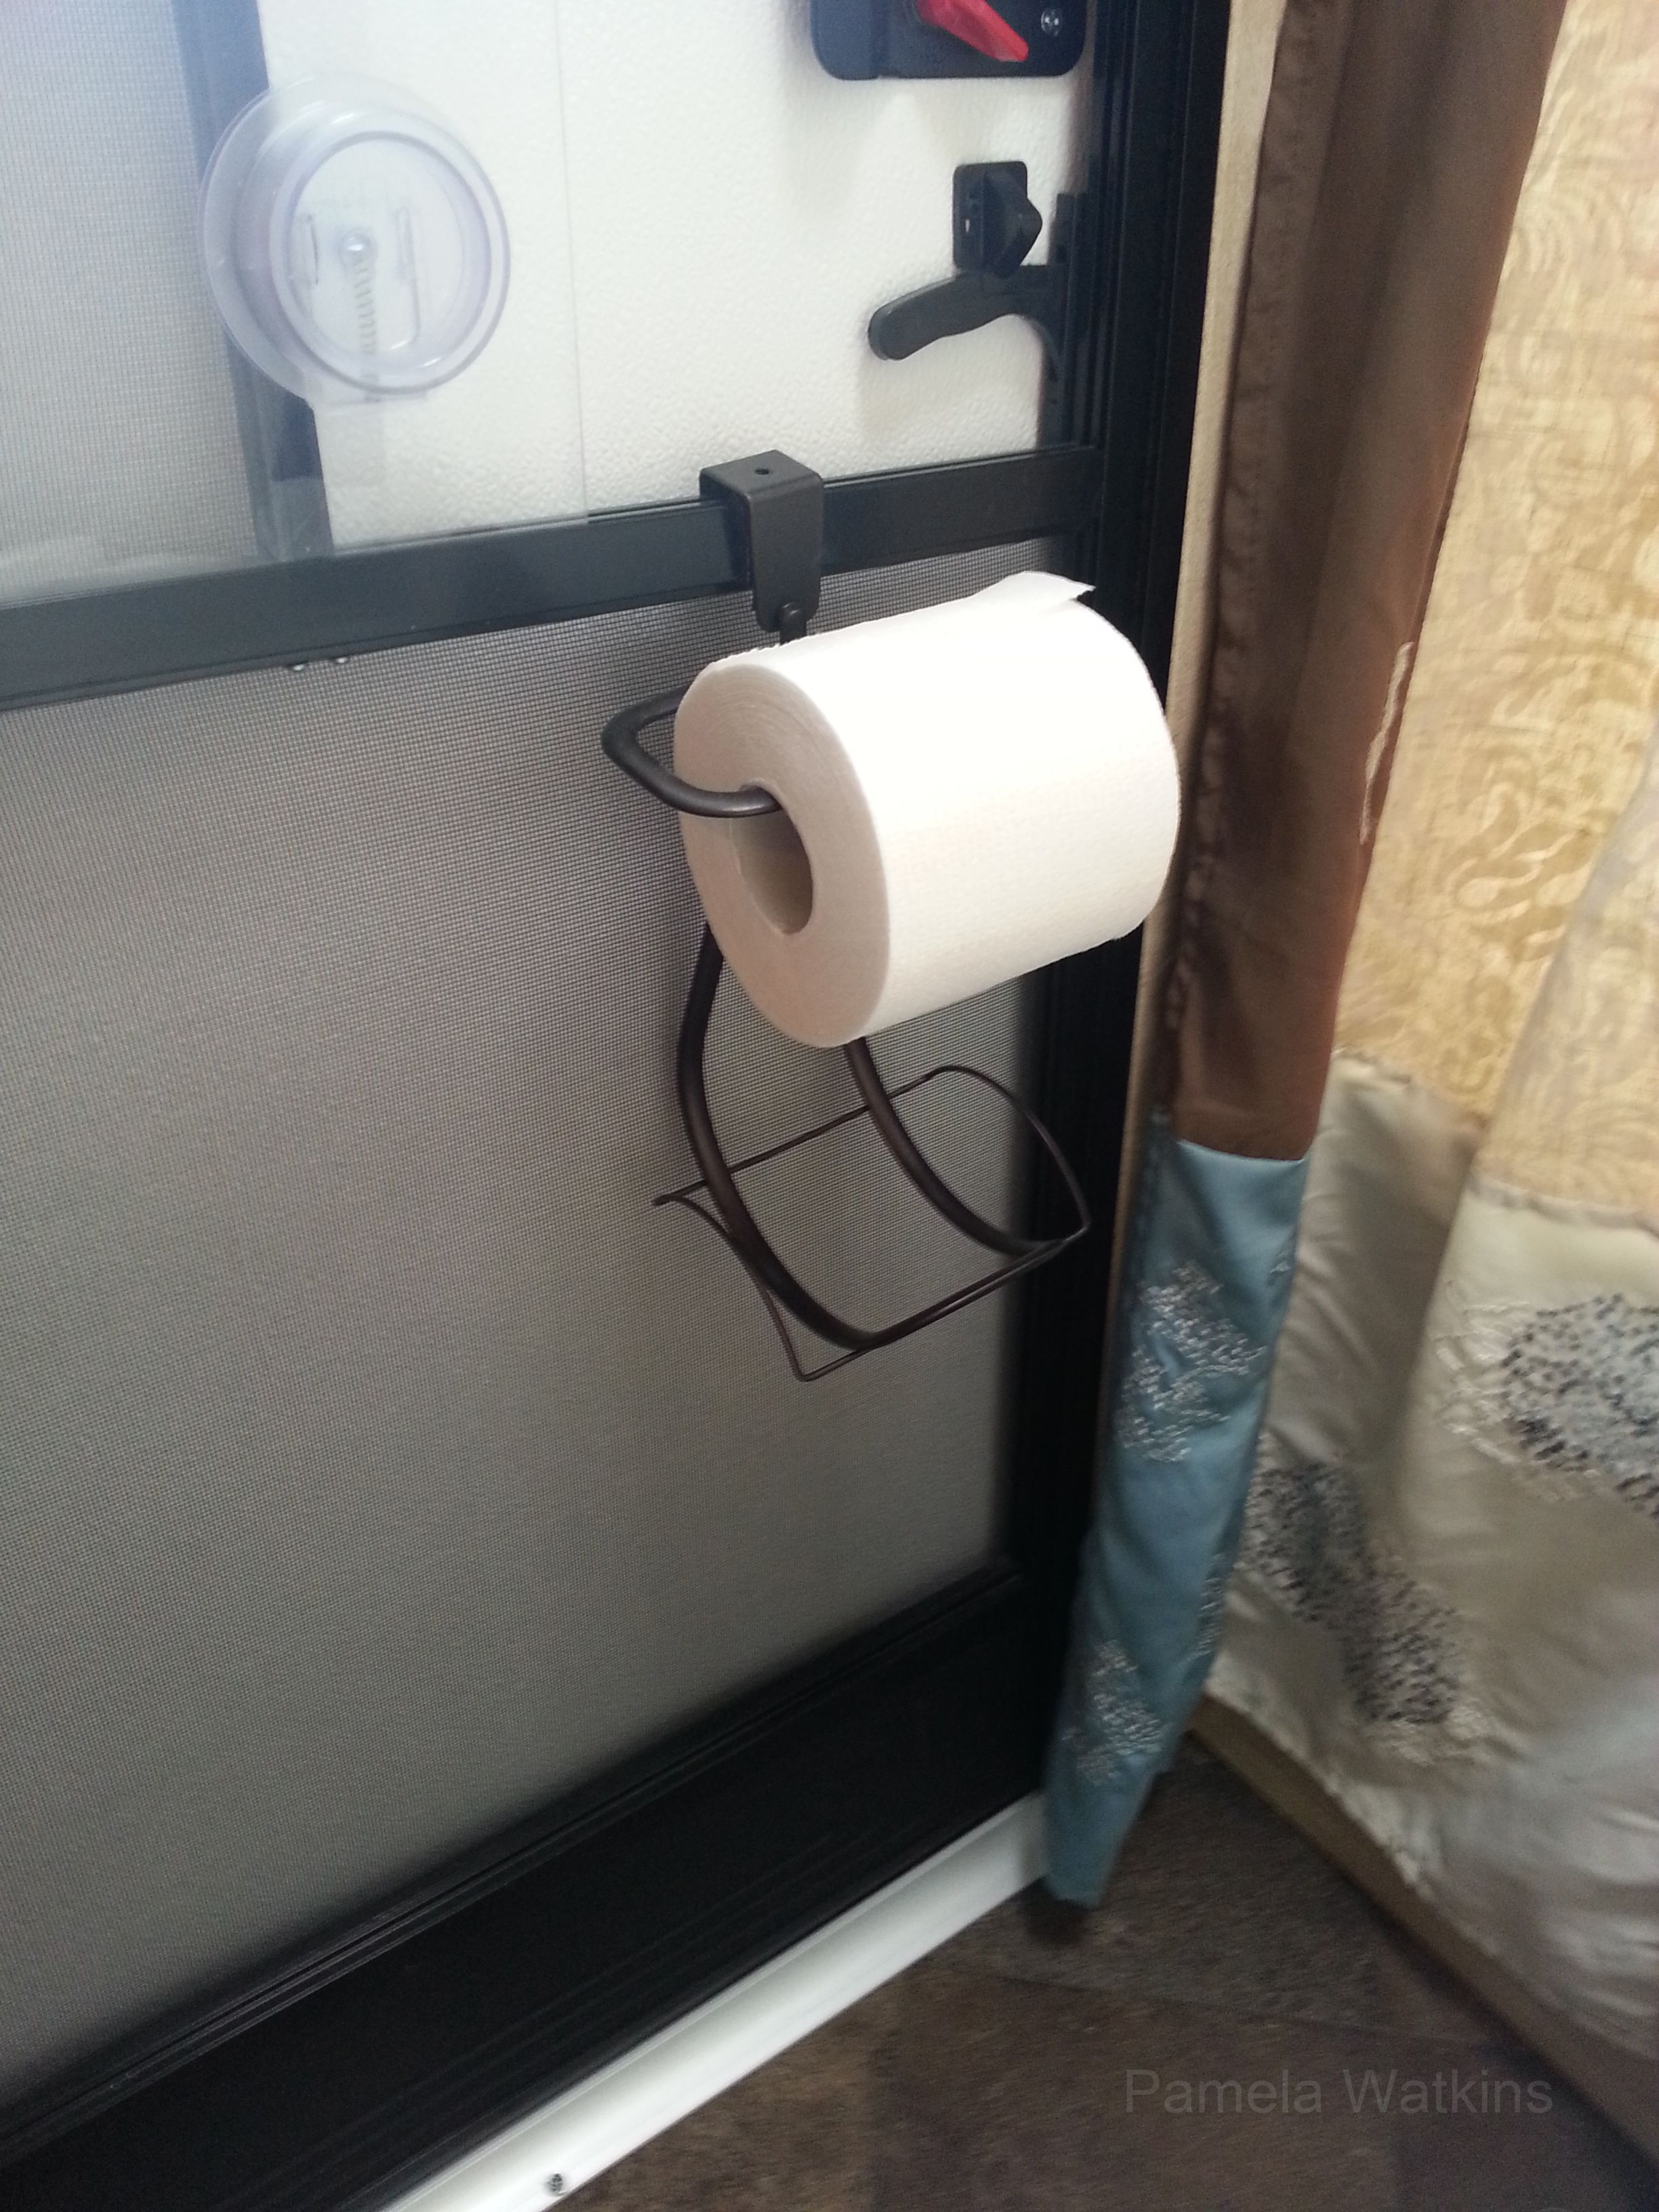 Toilet Paper Holder For Camper Attached With Velcro